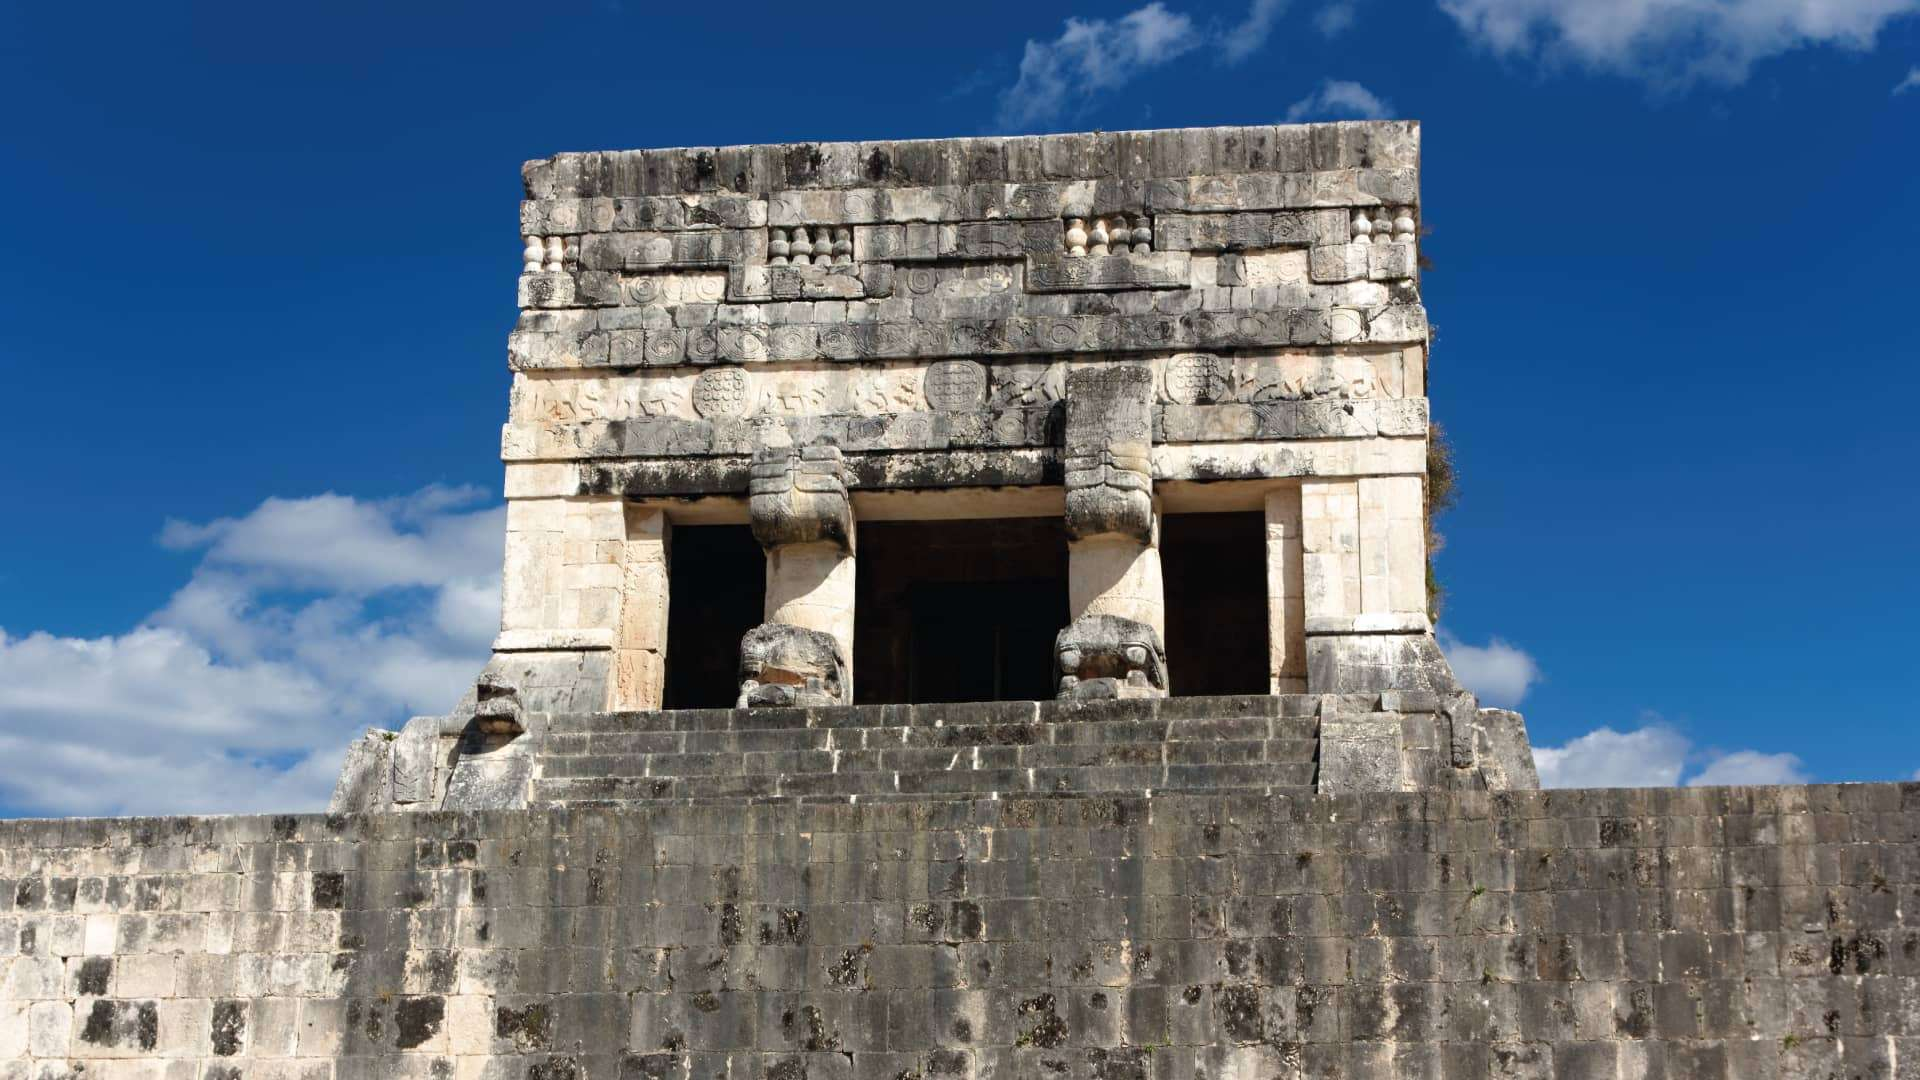 Temple of the Jaguars in Chichen Itza